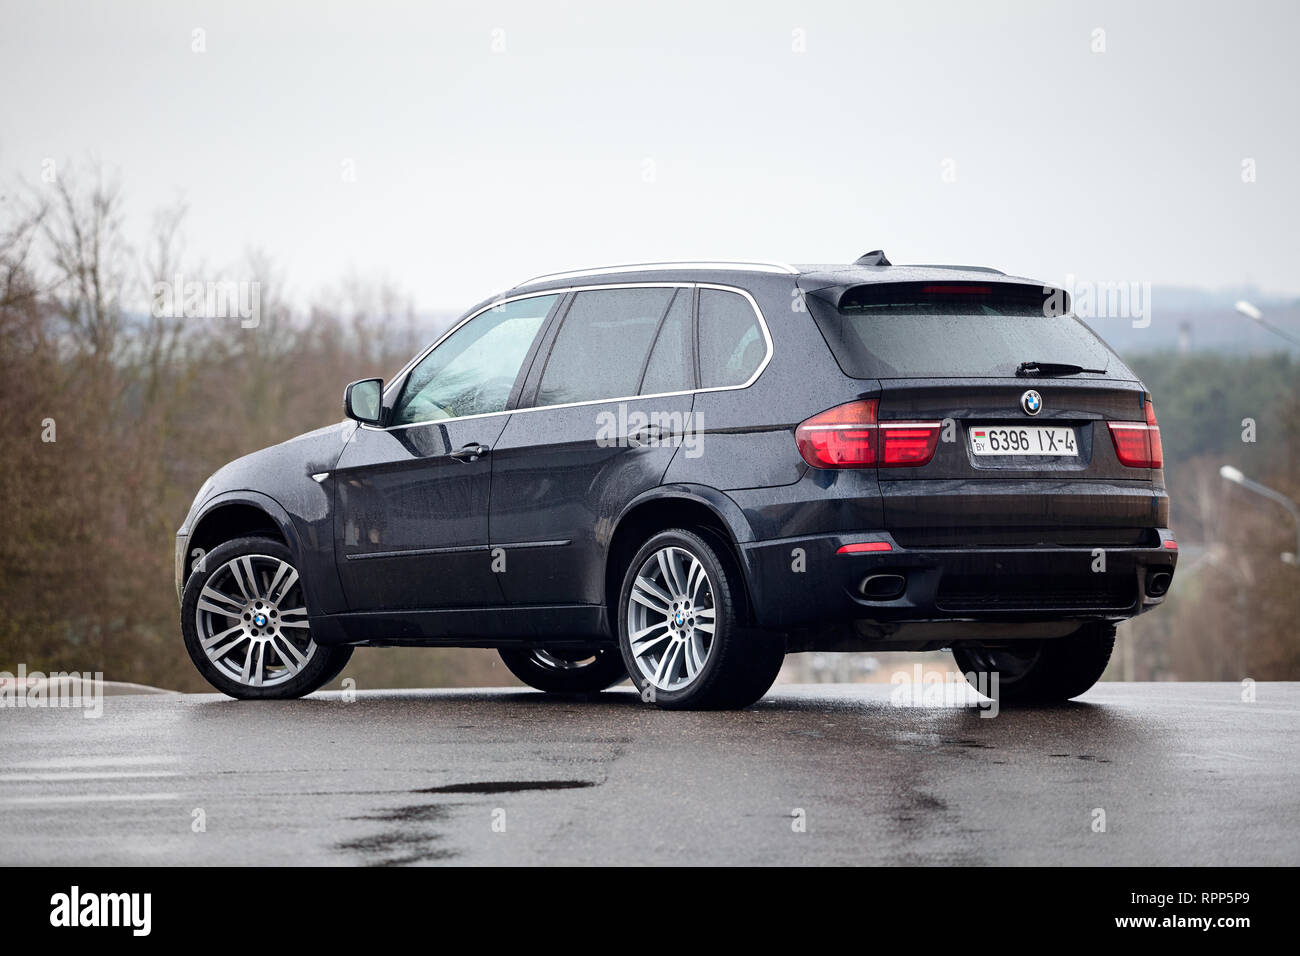 GRODNO, BELARUS - OCTOBER 2016: BMW X5 standing on asphalt under rain covered with raindrops over gray rainy sky and forest background. - Stock Image